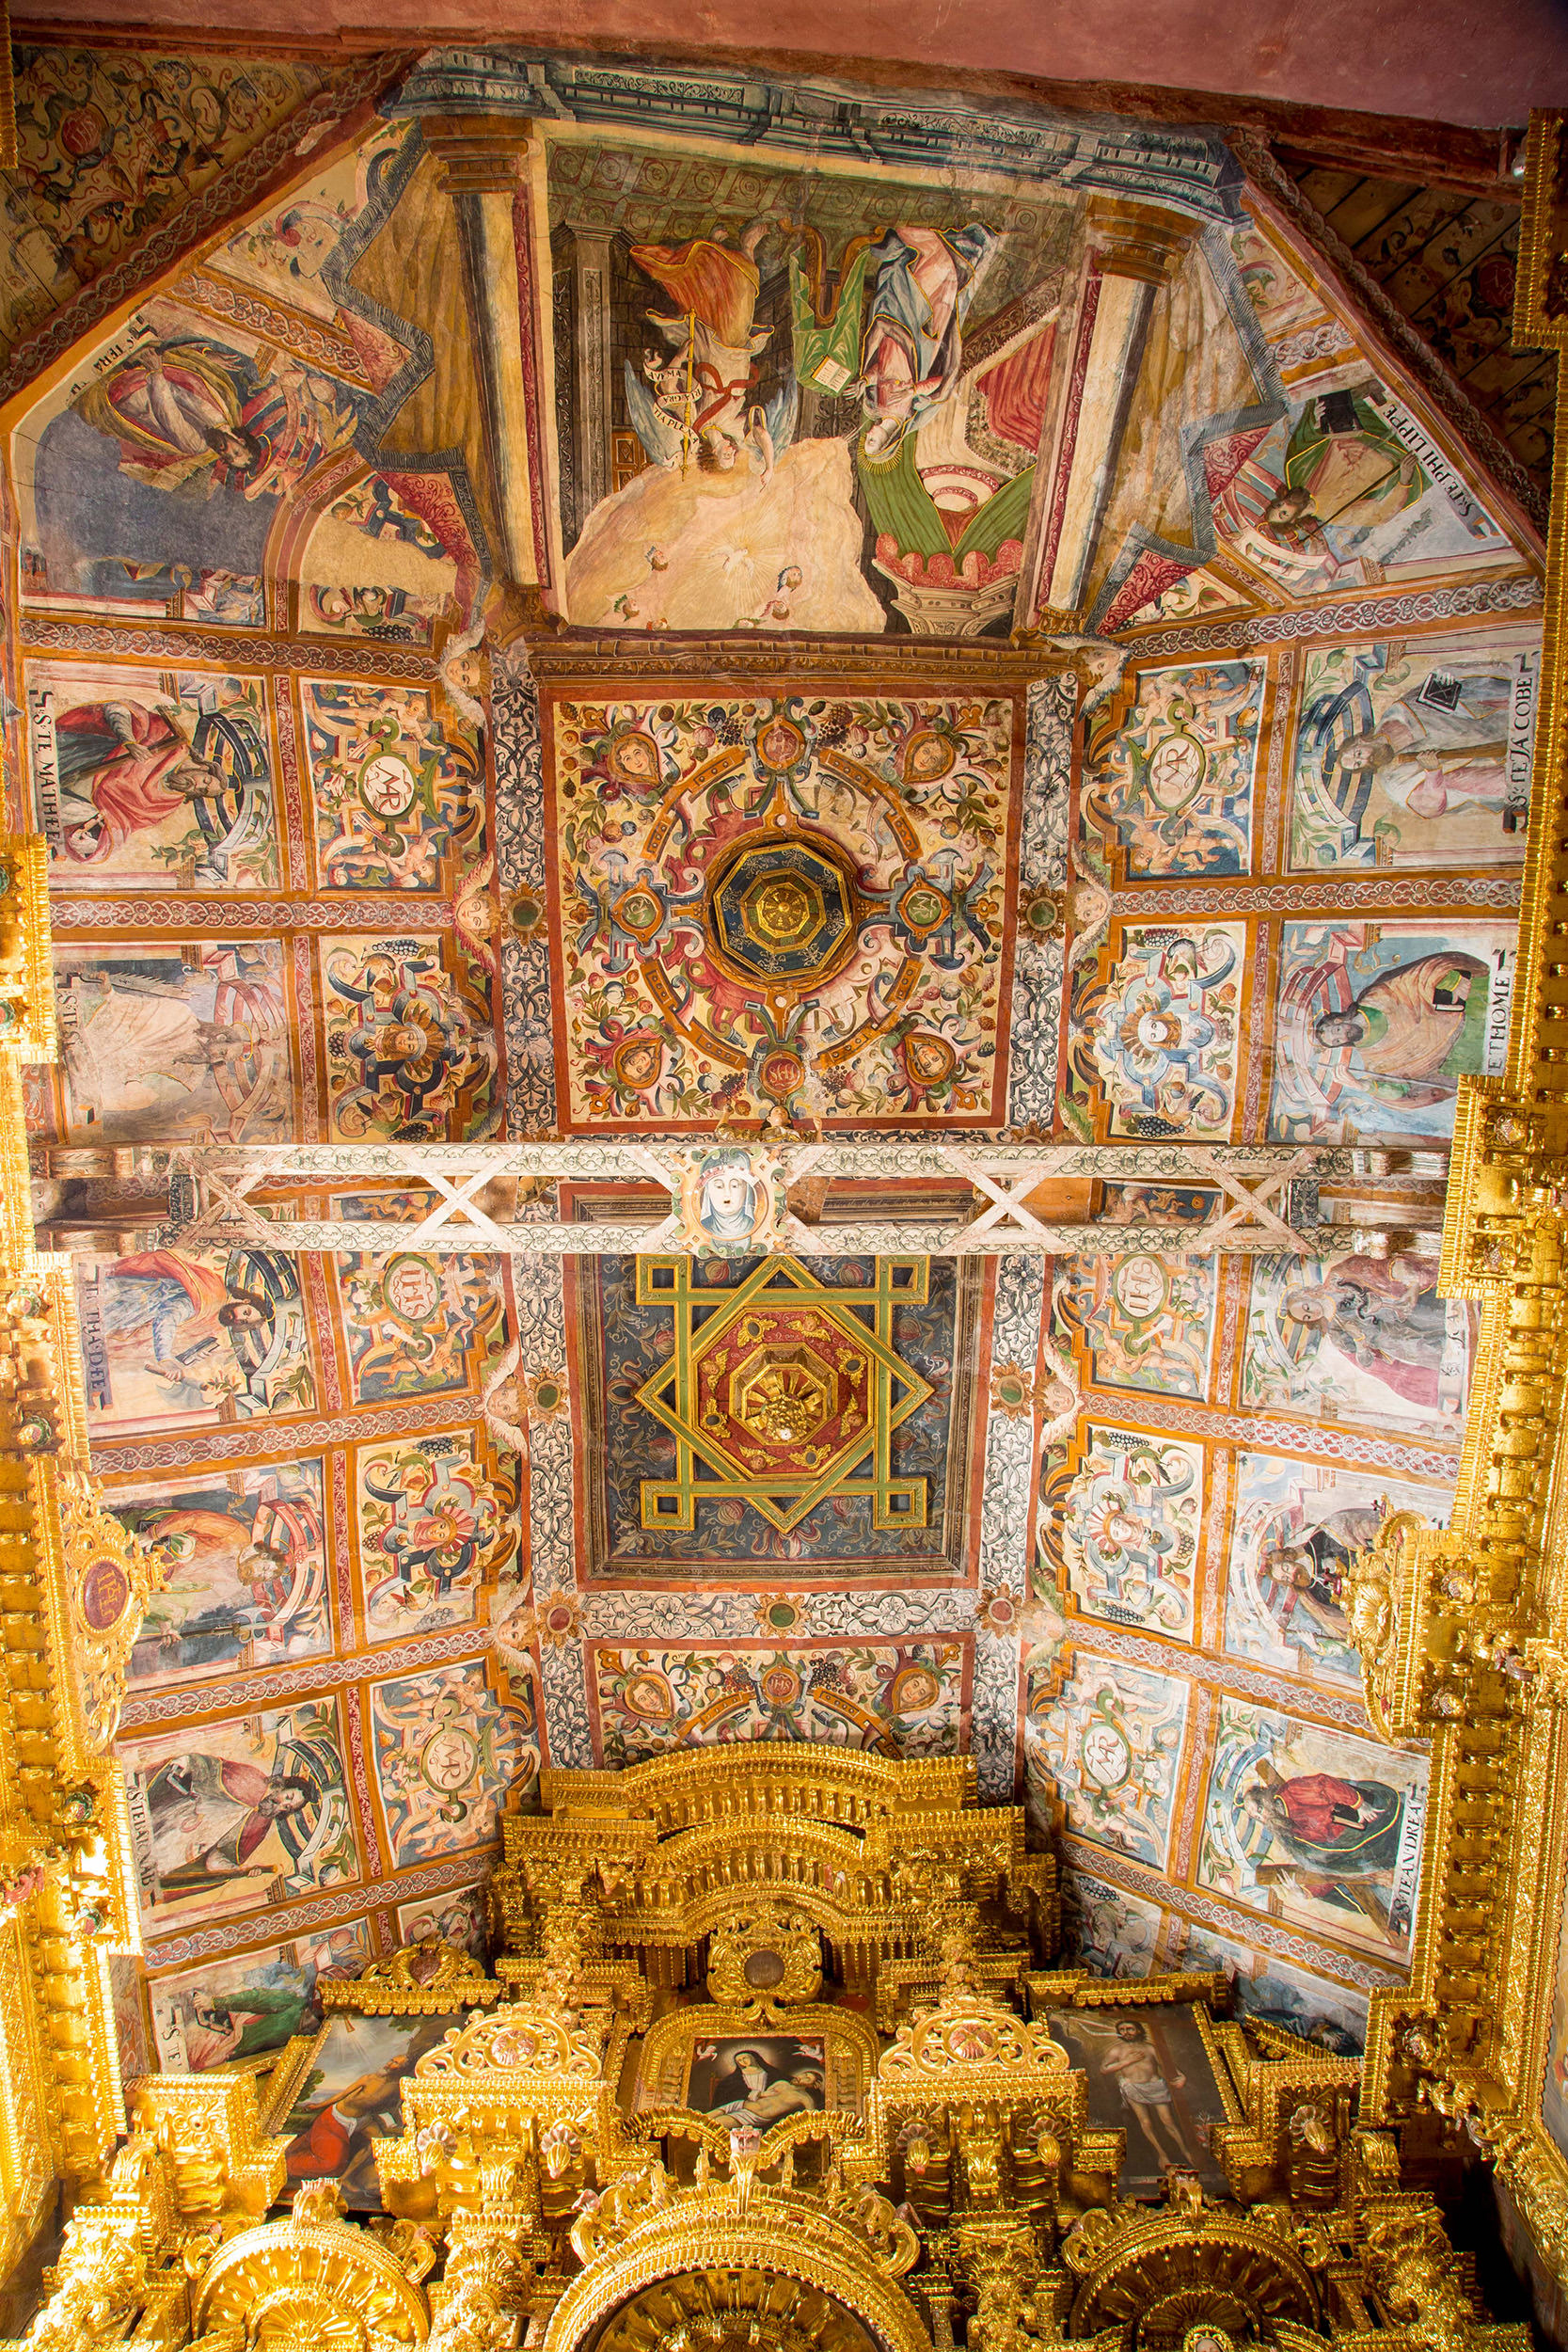 Fig. 8 Painted ceiling with a scene of the Annunciation and portraits of saints, Church of Checacupe, Canchis Province, 17th century. Photo by Raúl Montero Quispe.